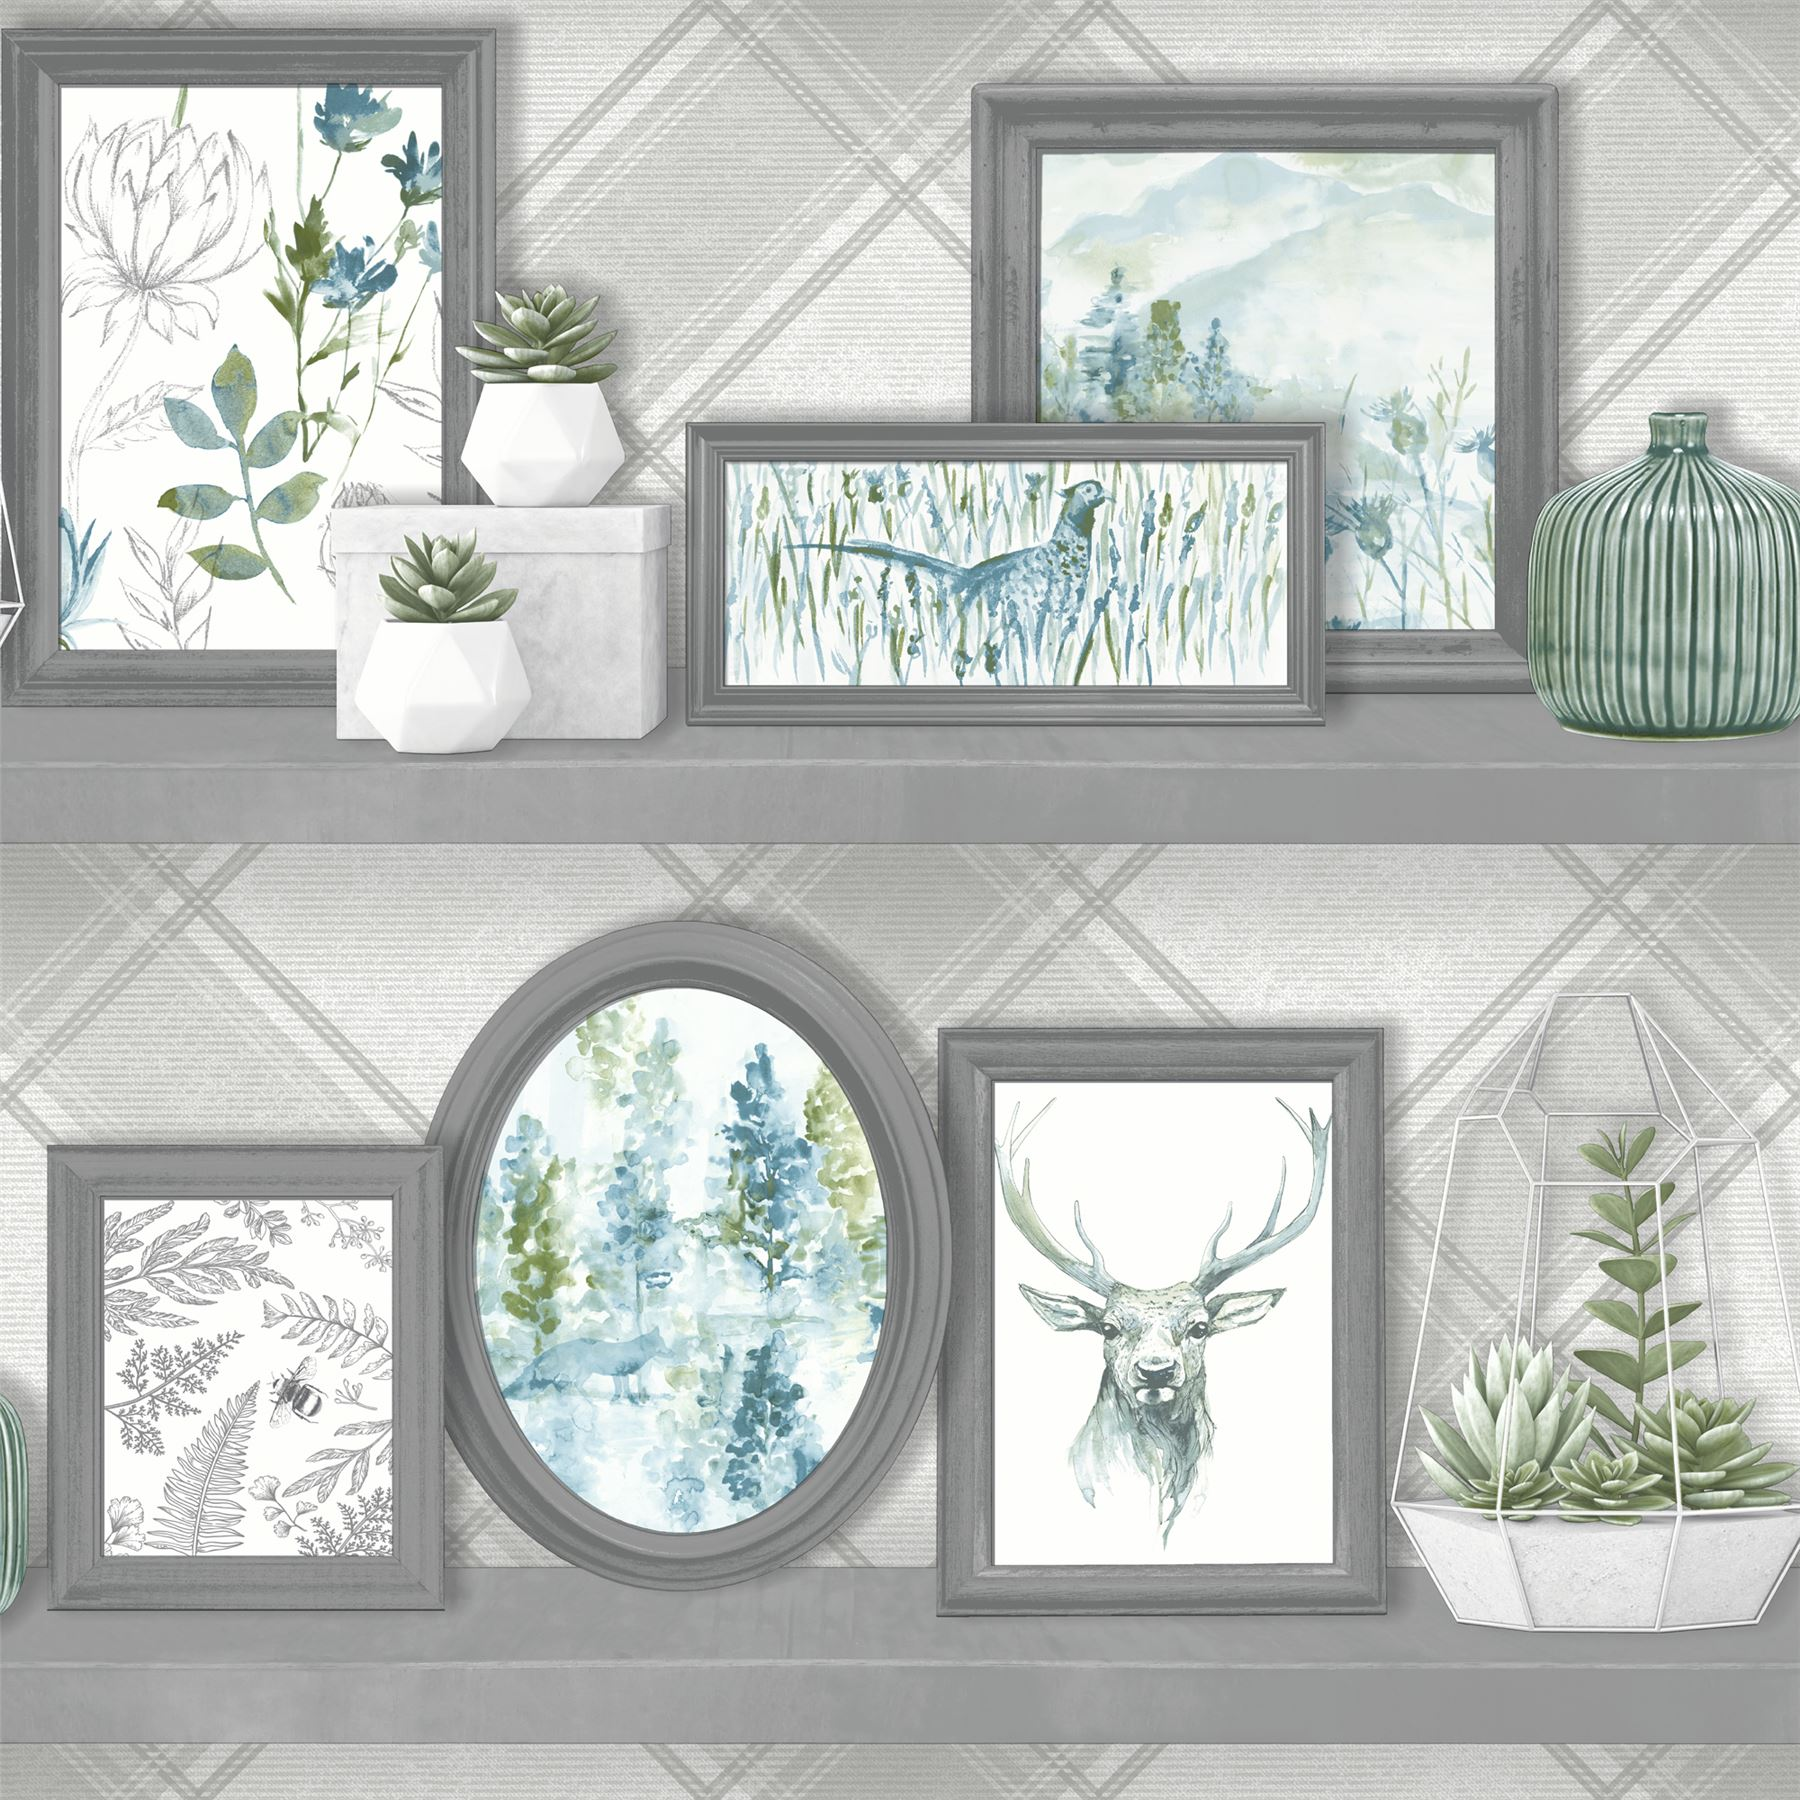 Details about Stag Frames Wallpaper Animal Print Pheasant Floral Flowers Grey Teal Holden